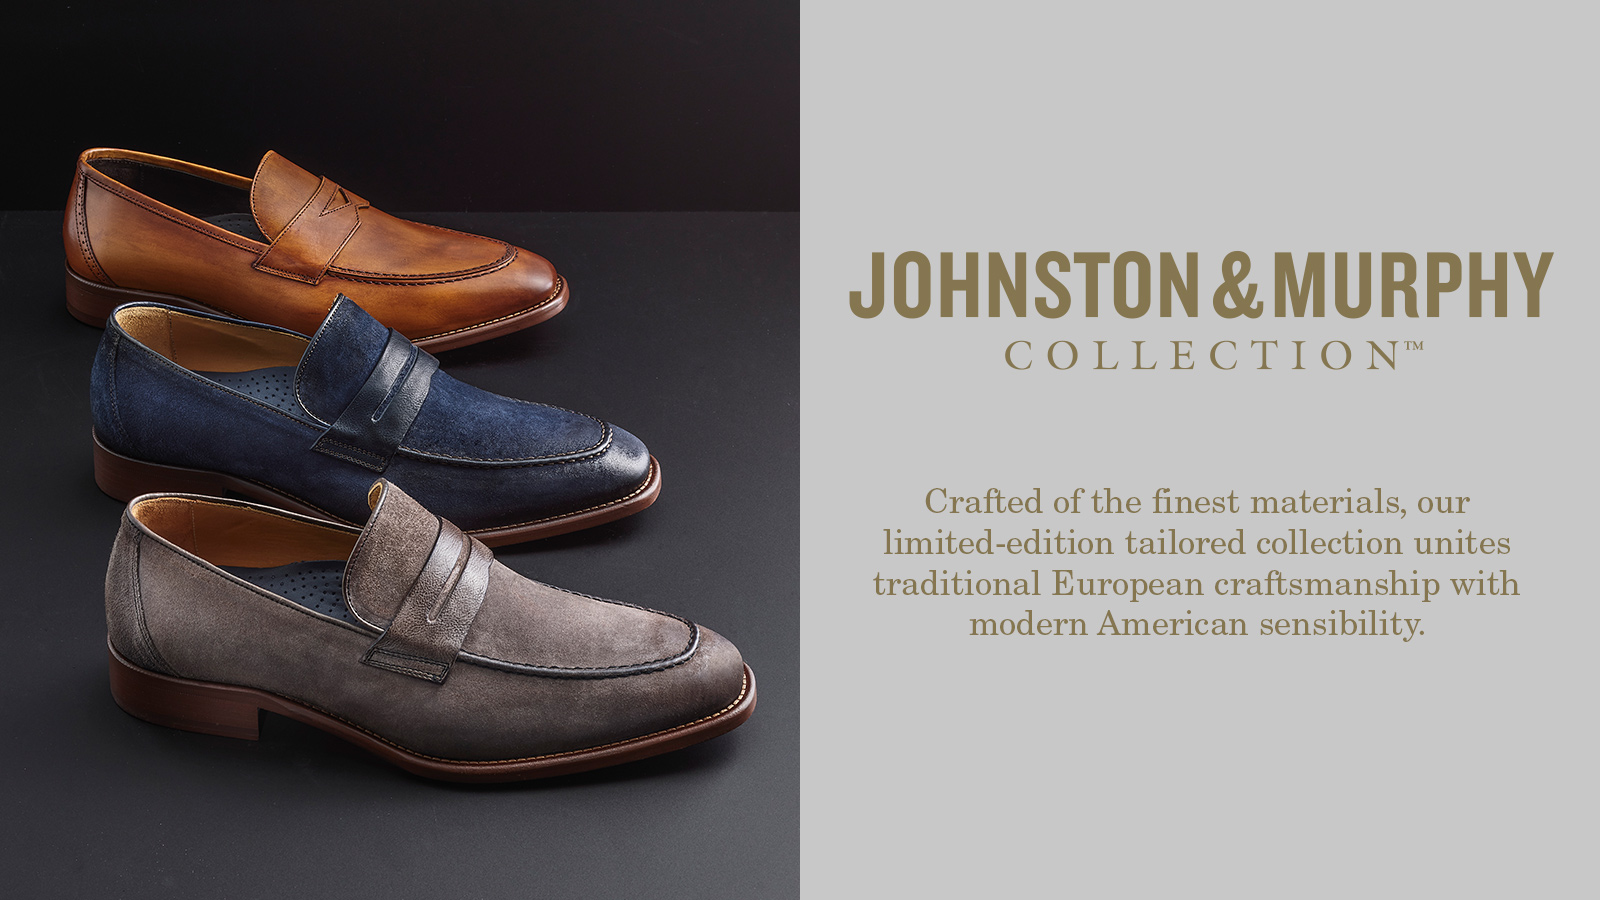 Johnston and Murphy Collection - Crafted of the finest materials